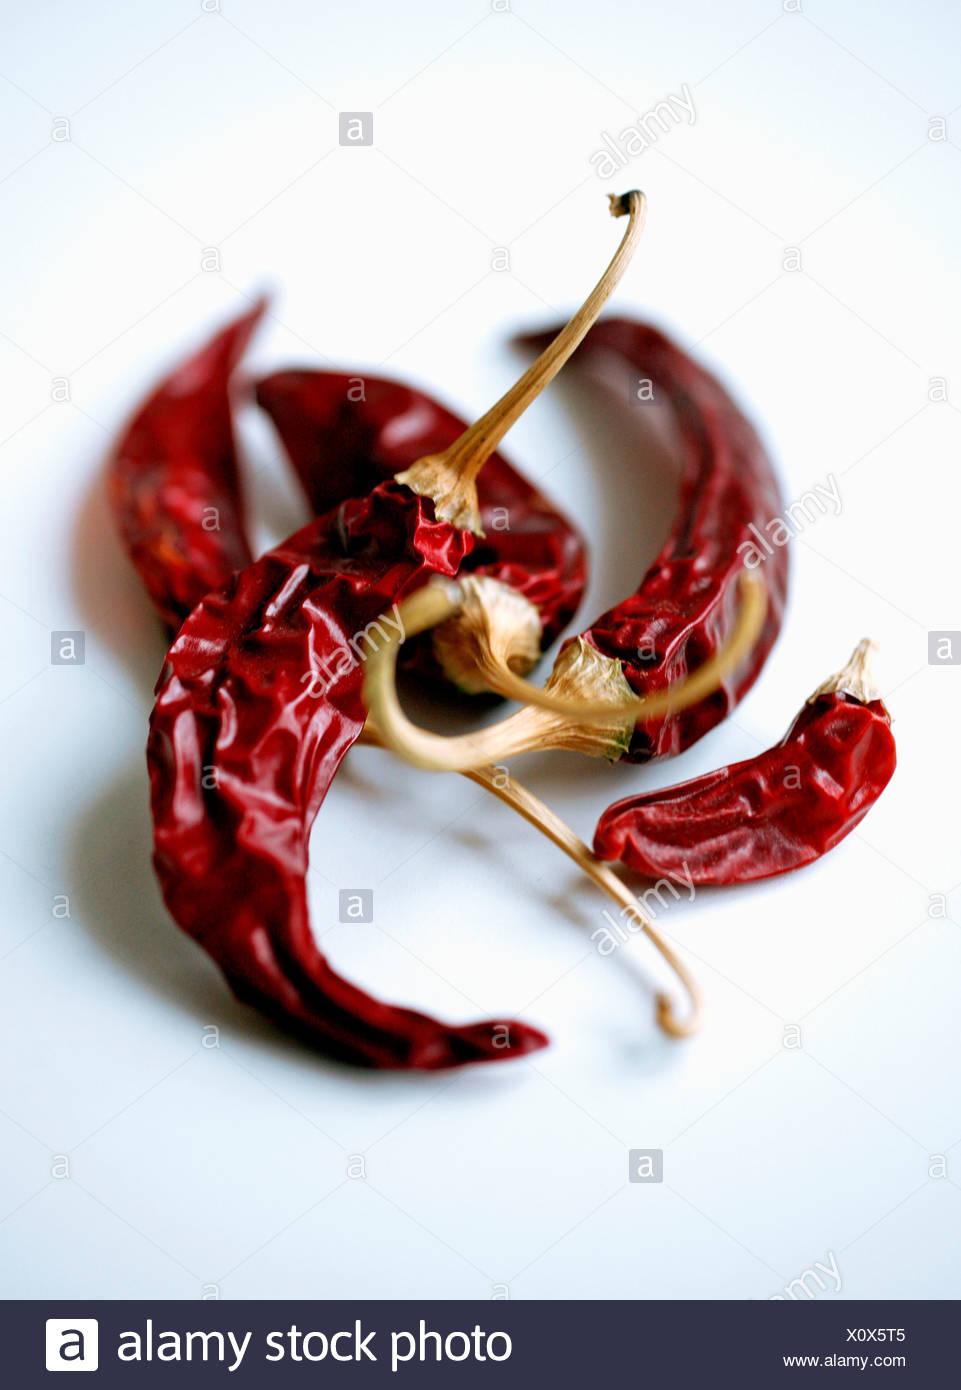 Chili peppers over white background Stock Photo